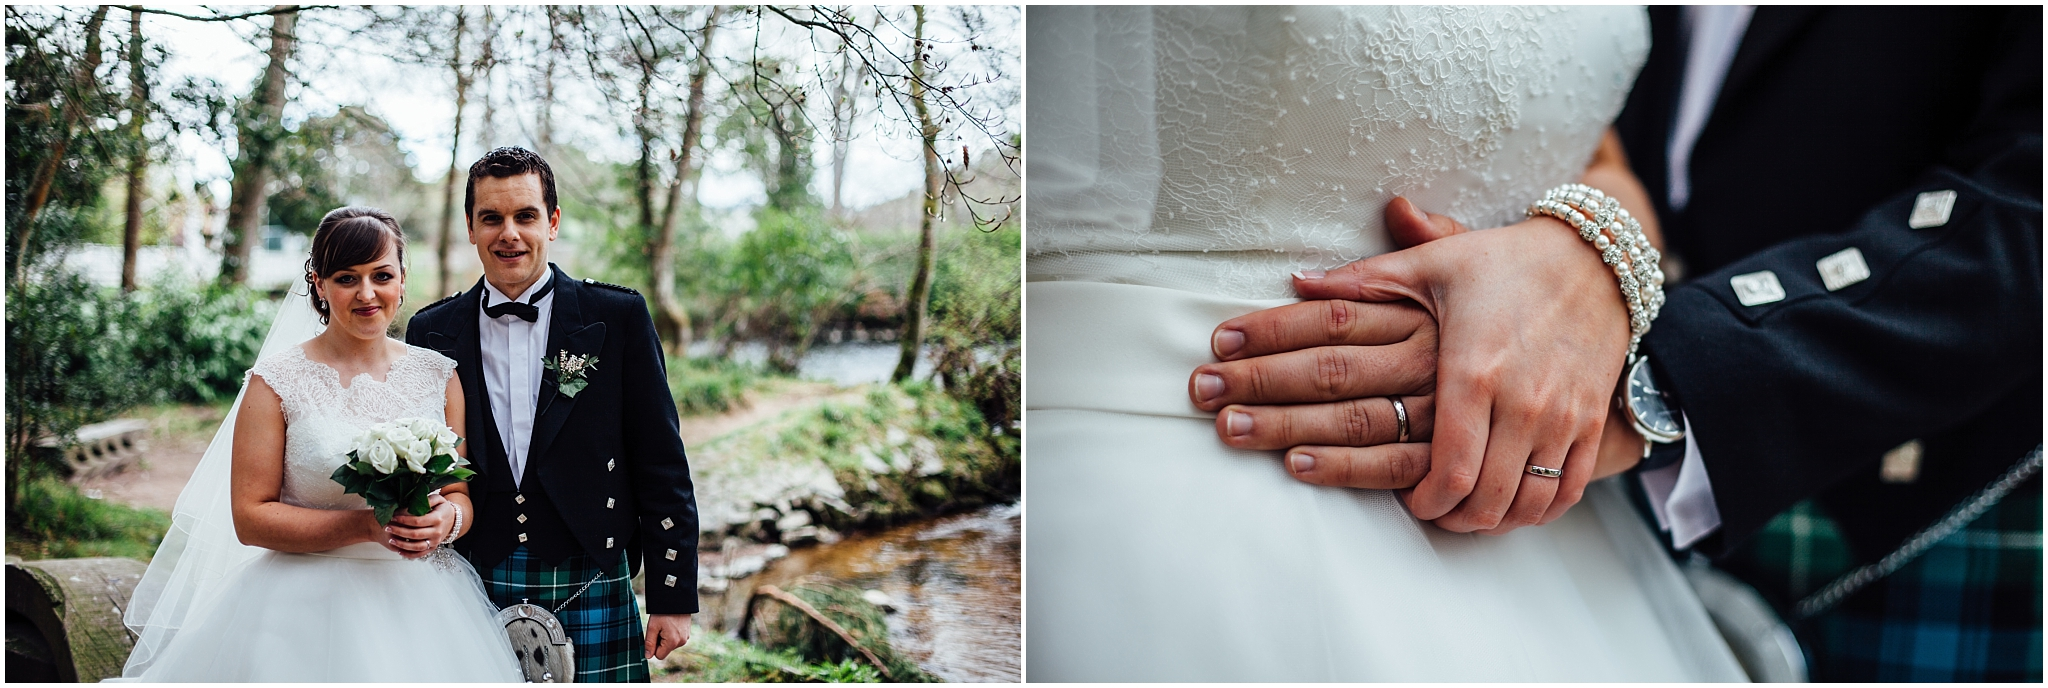 Inverness Wedding Photographer